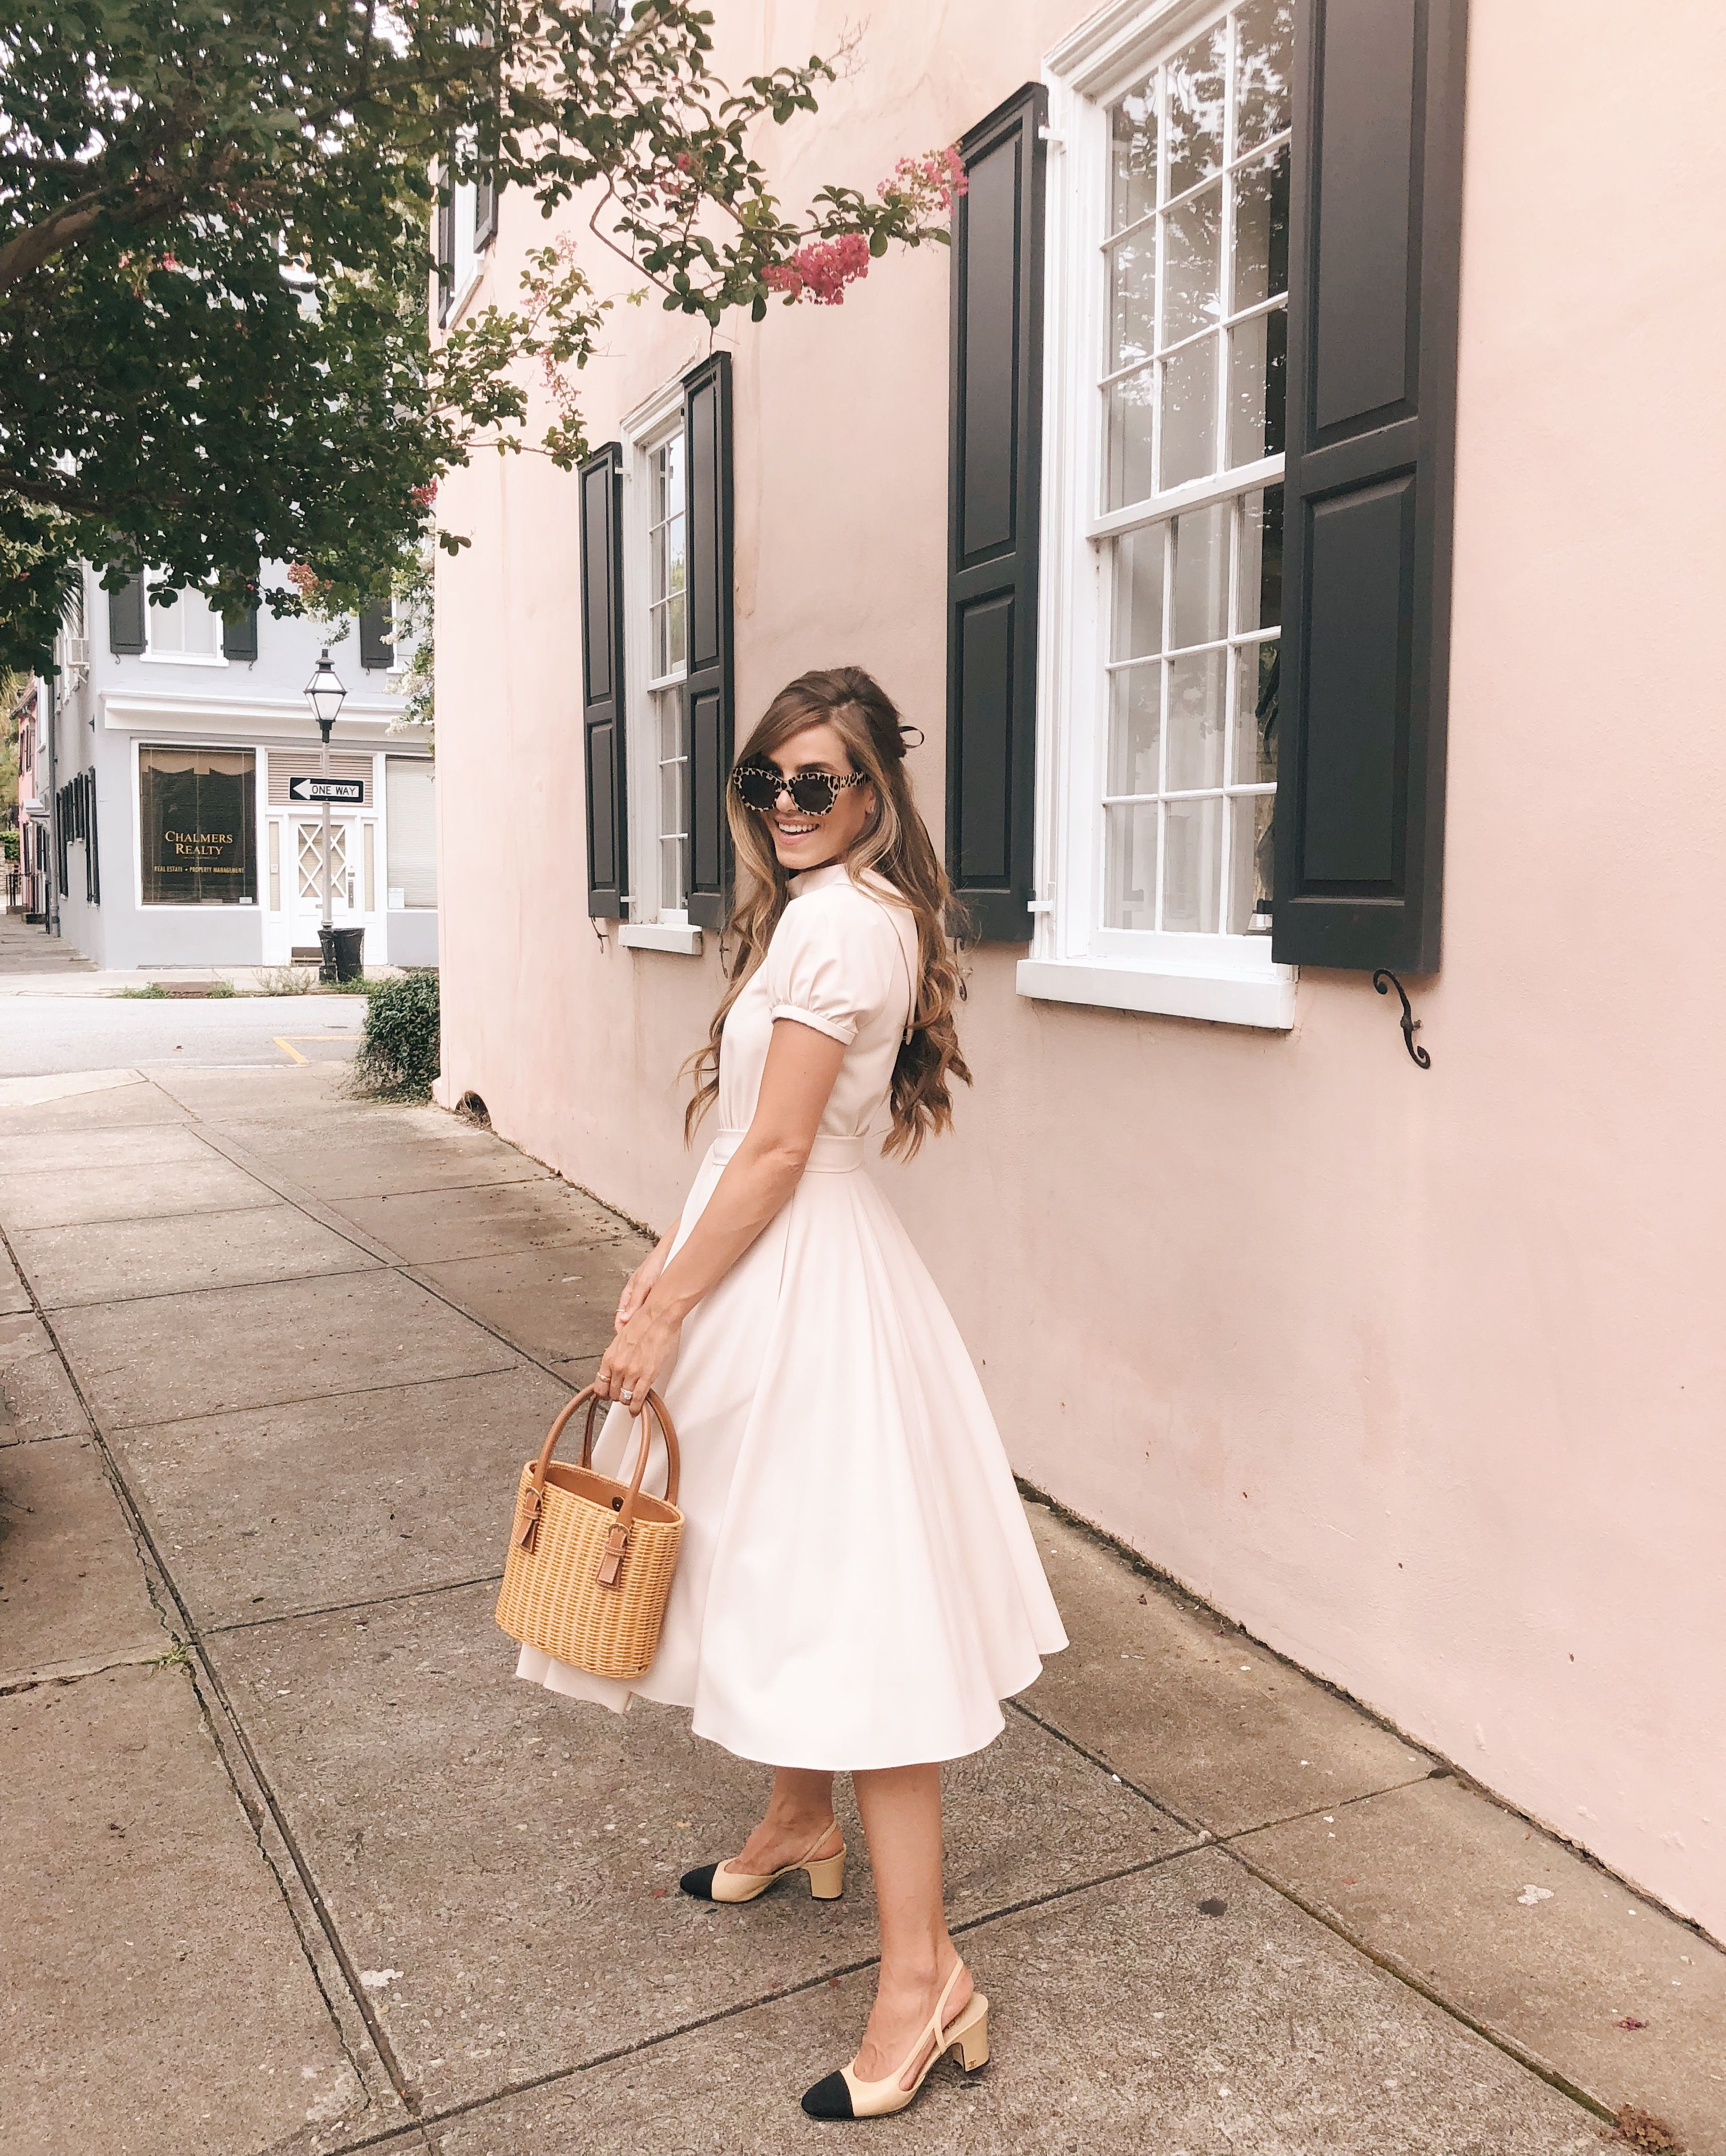 58a082f779e8 Daily Look 7.9.18 featuring Julia wearing a Gal Meets Glam Collection  Eleanor dress with Chanel heels, a vintage Ferragamo basket bag, and kate  spade New ...